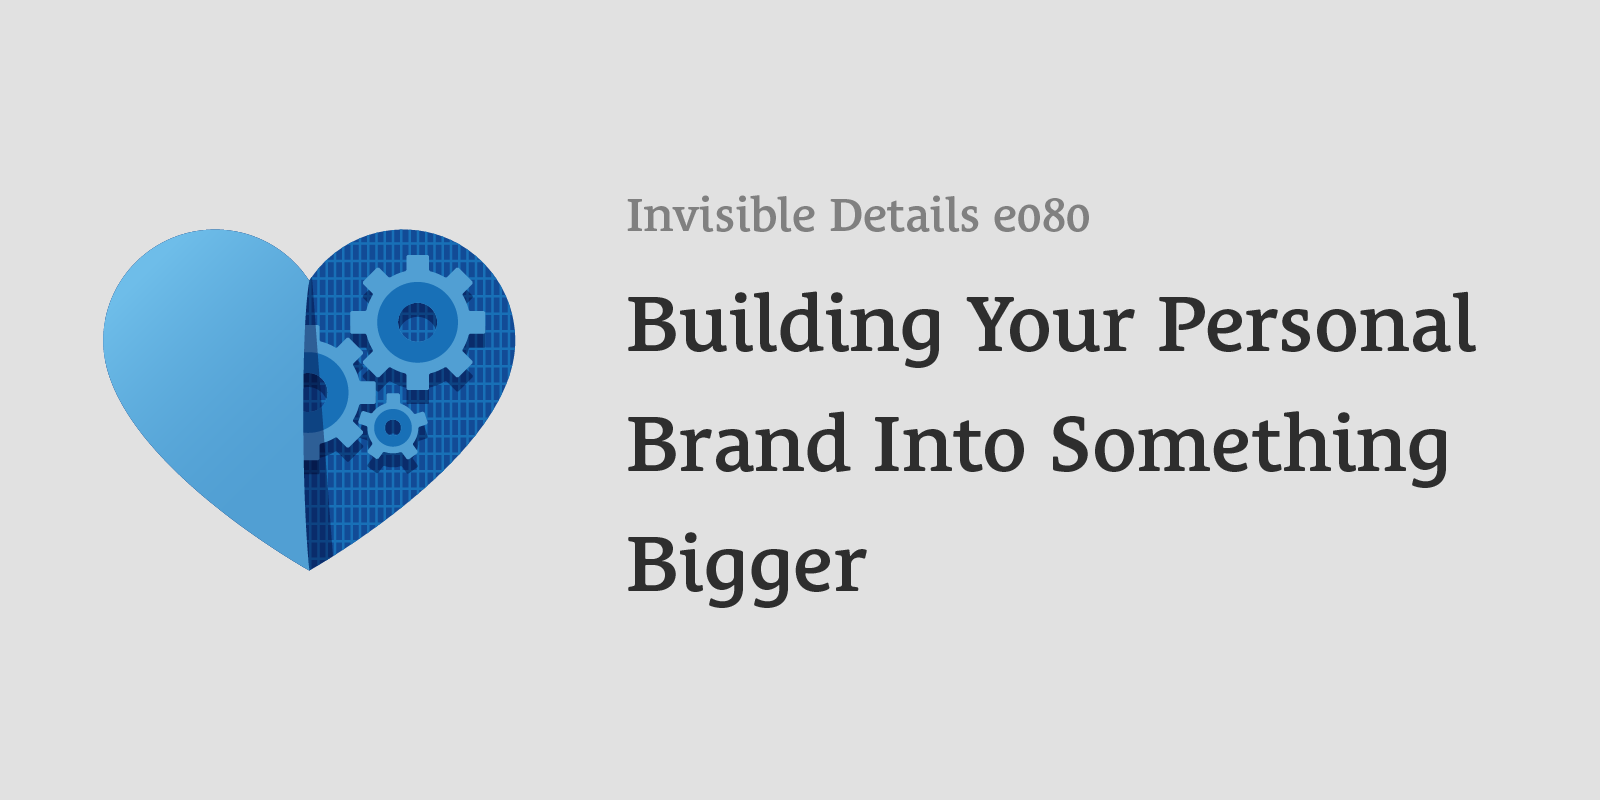 Building Your Personal Brand Into Something Bigger